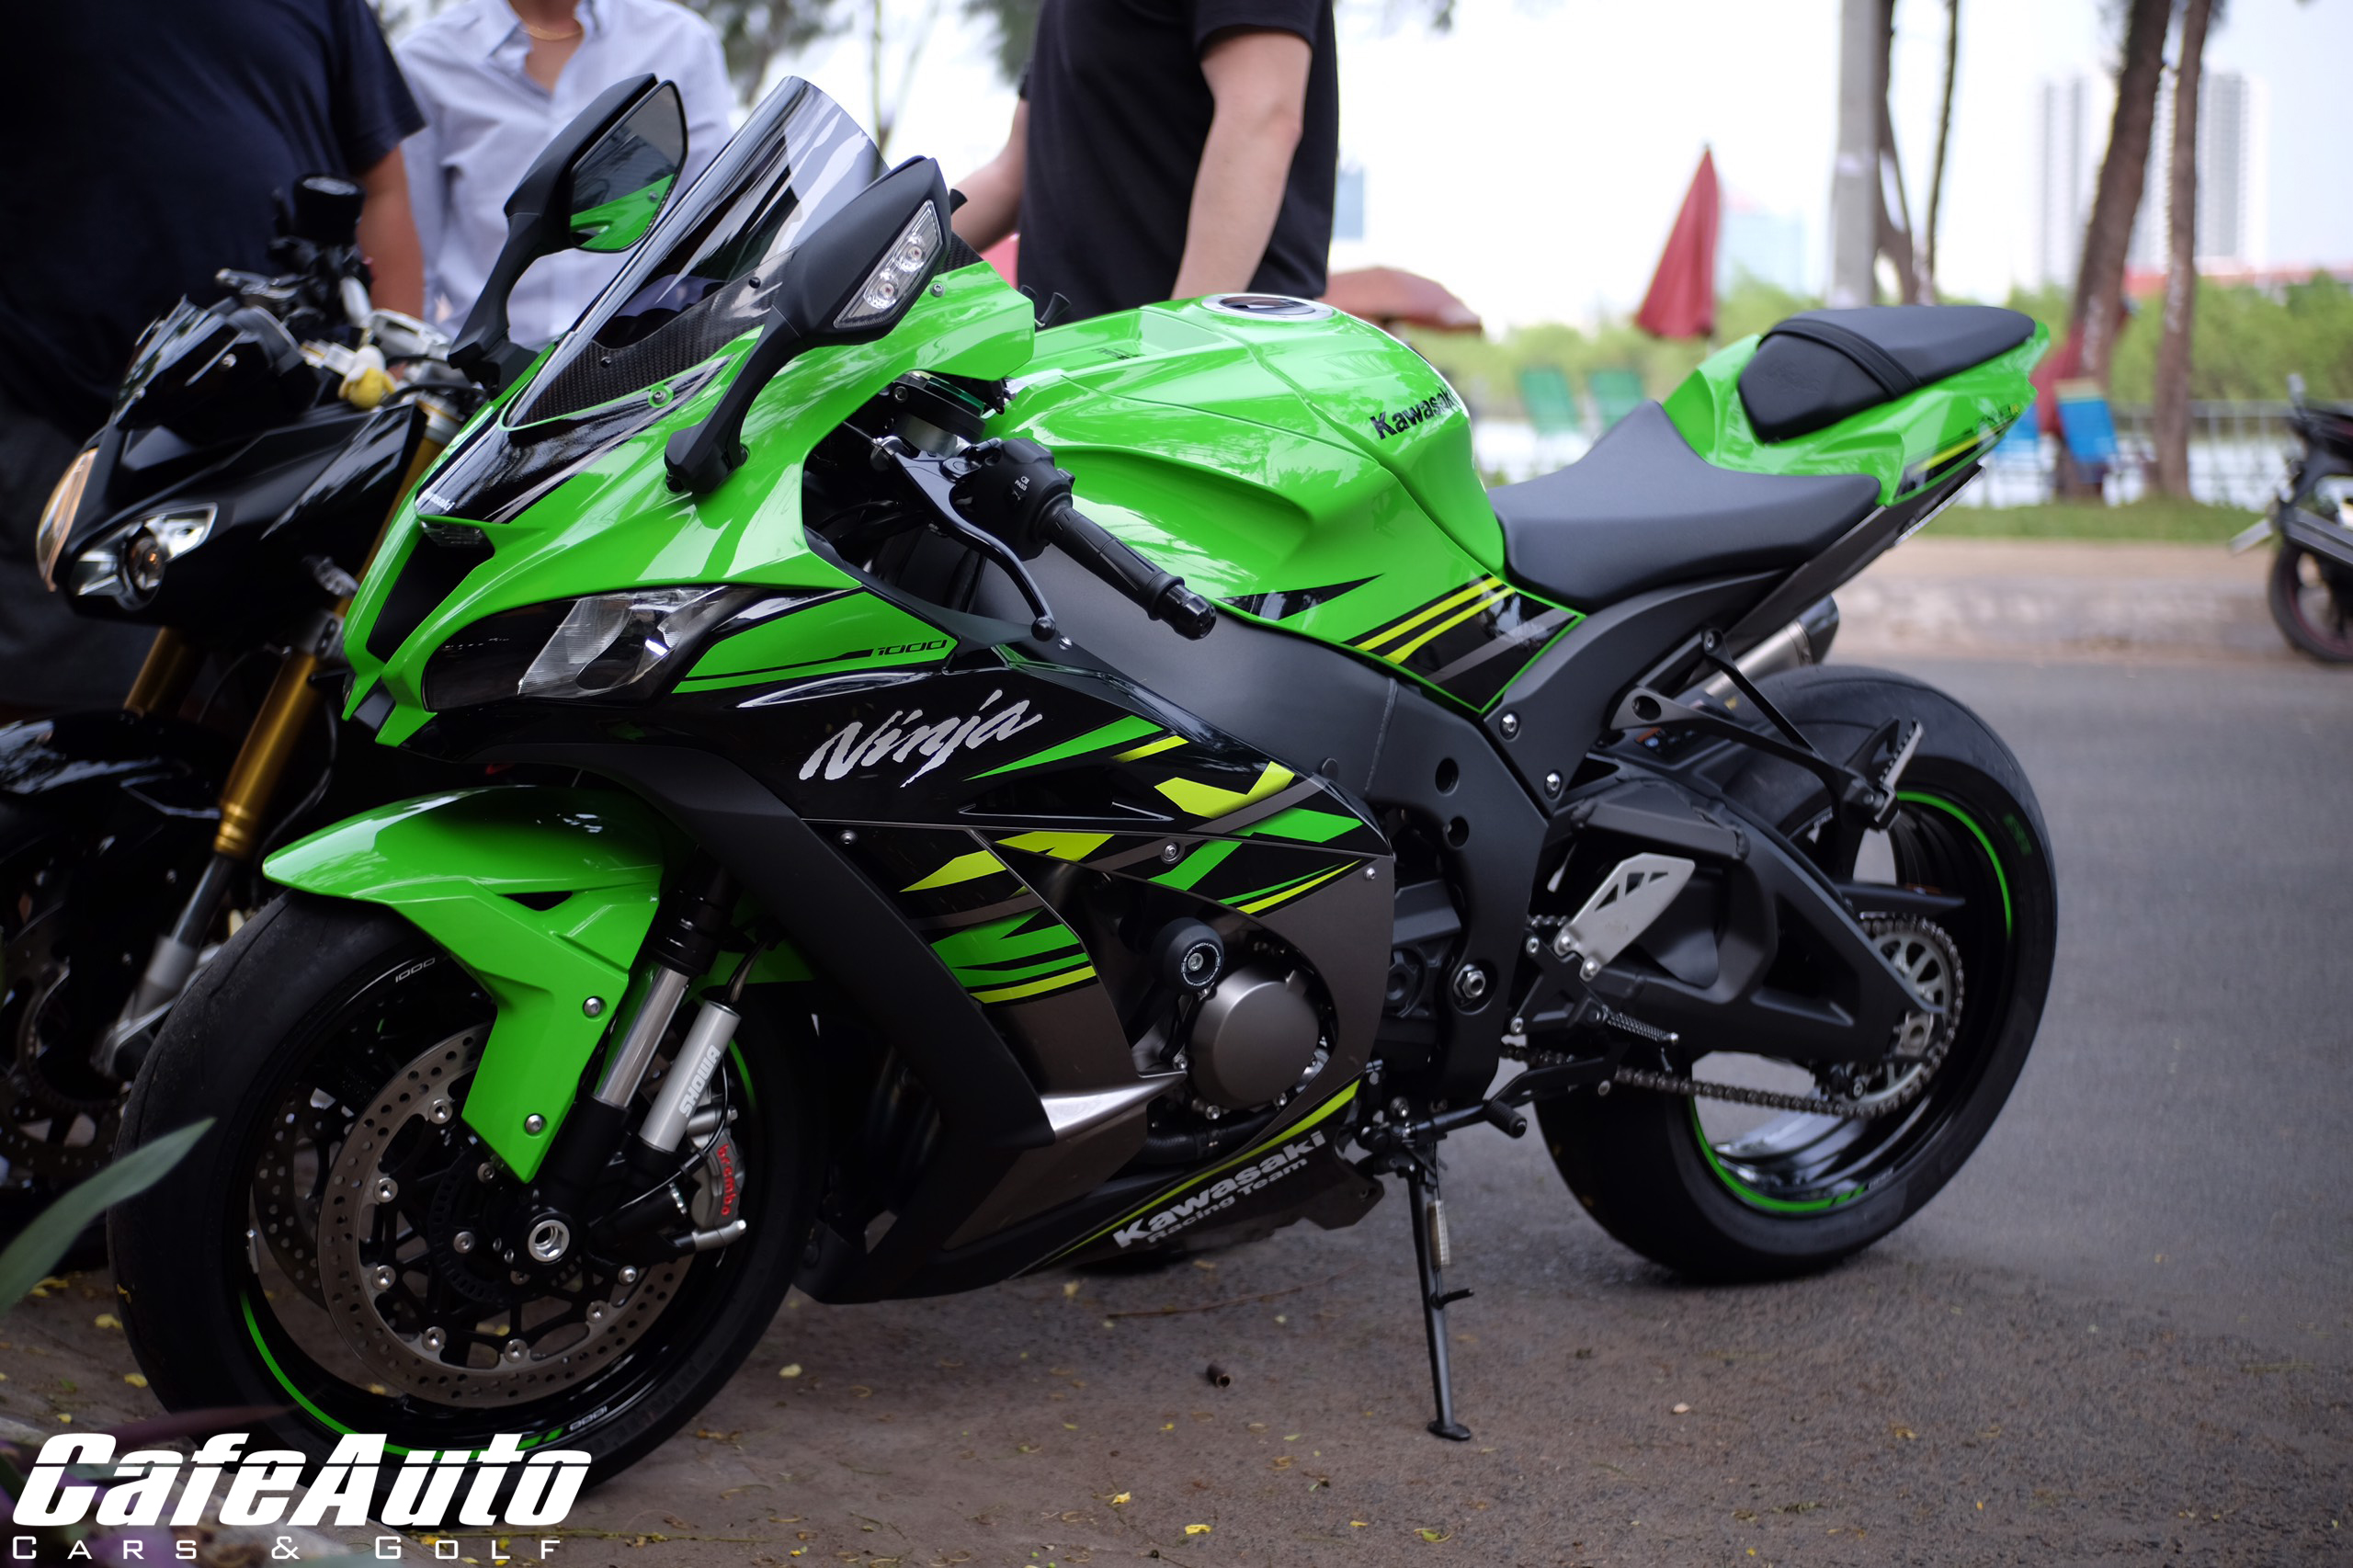 ZX10R-cafeautovn-1